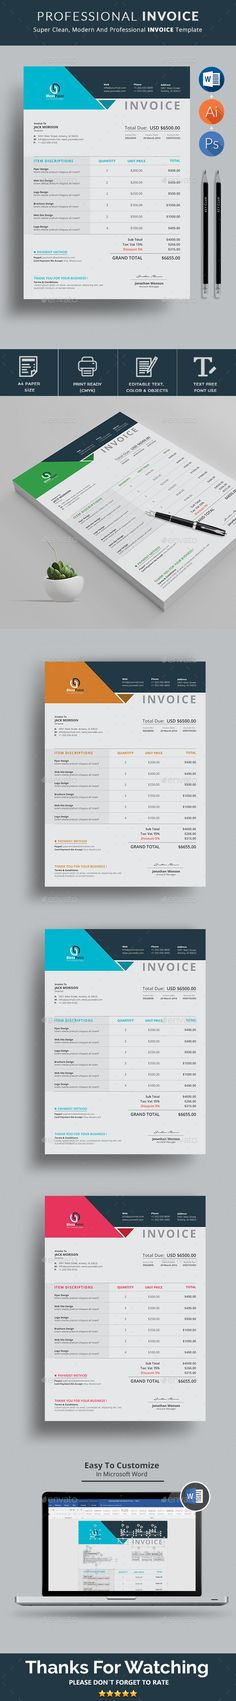 Invoice - Free Template Filing, Gaming and Template - customize invoice